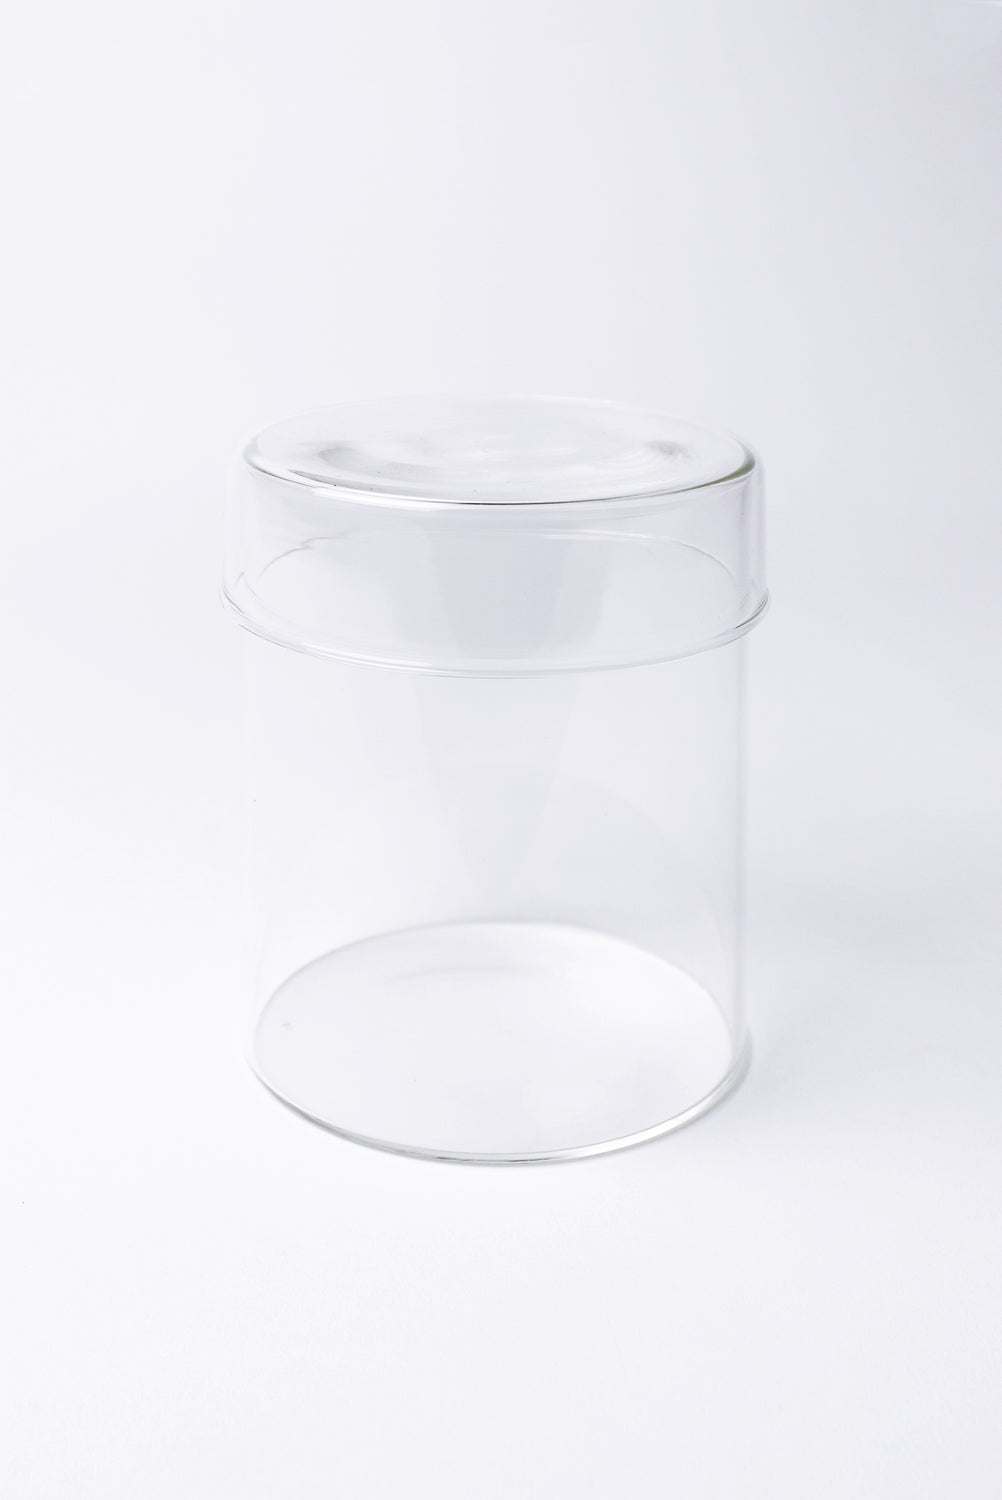 Schale Glass Case with Lid, Large